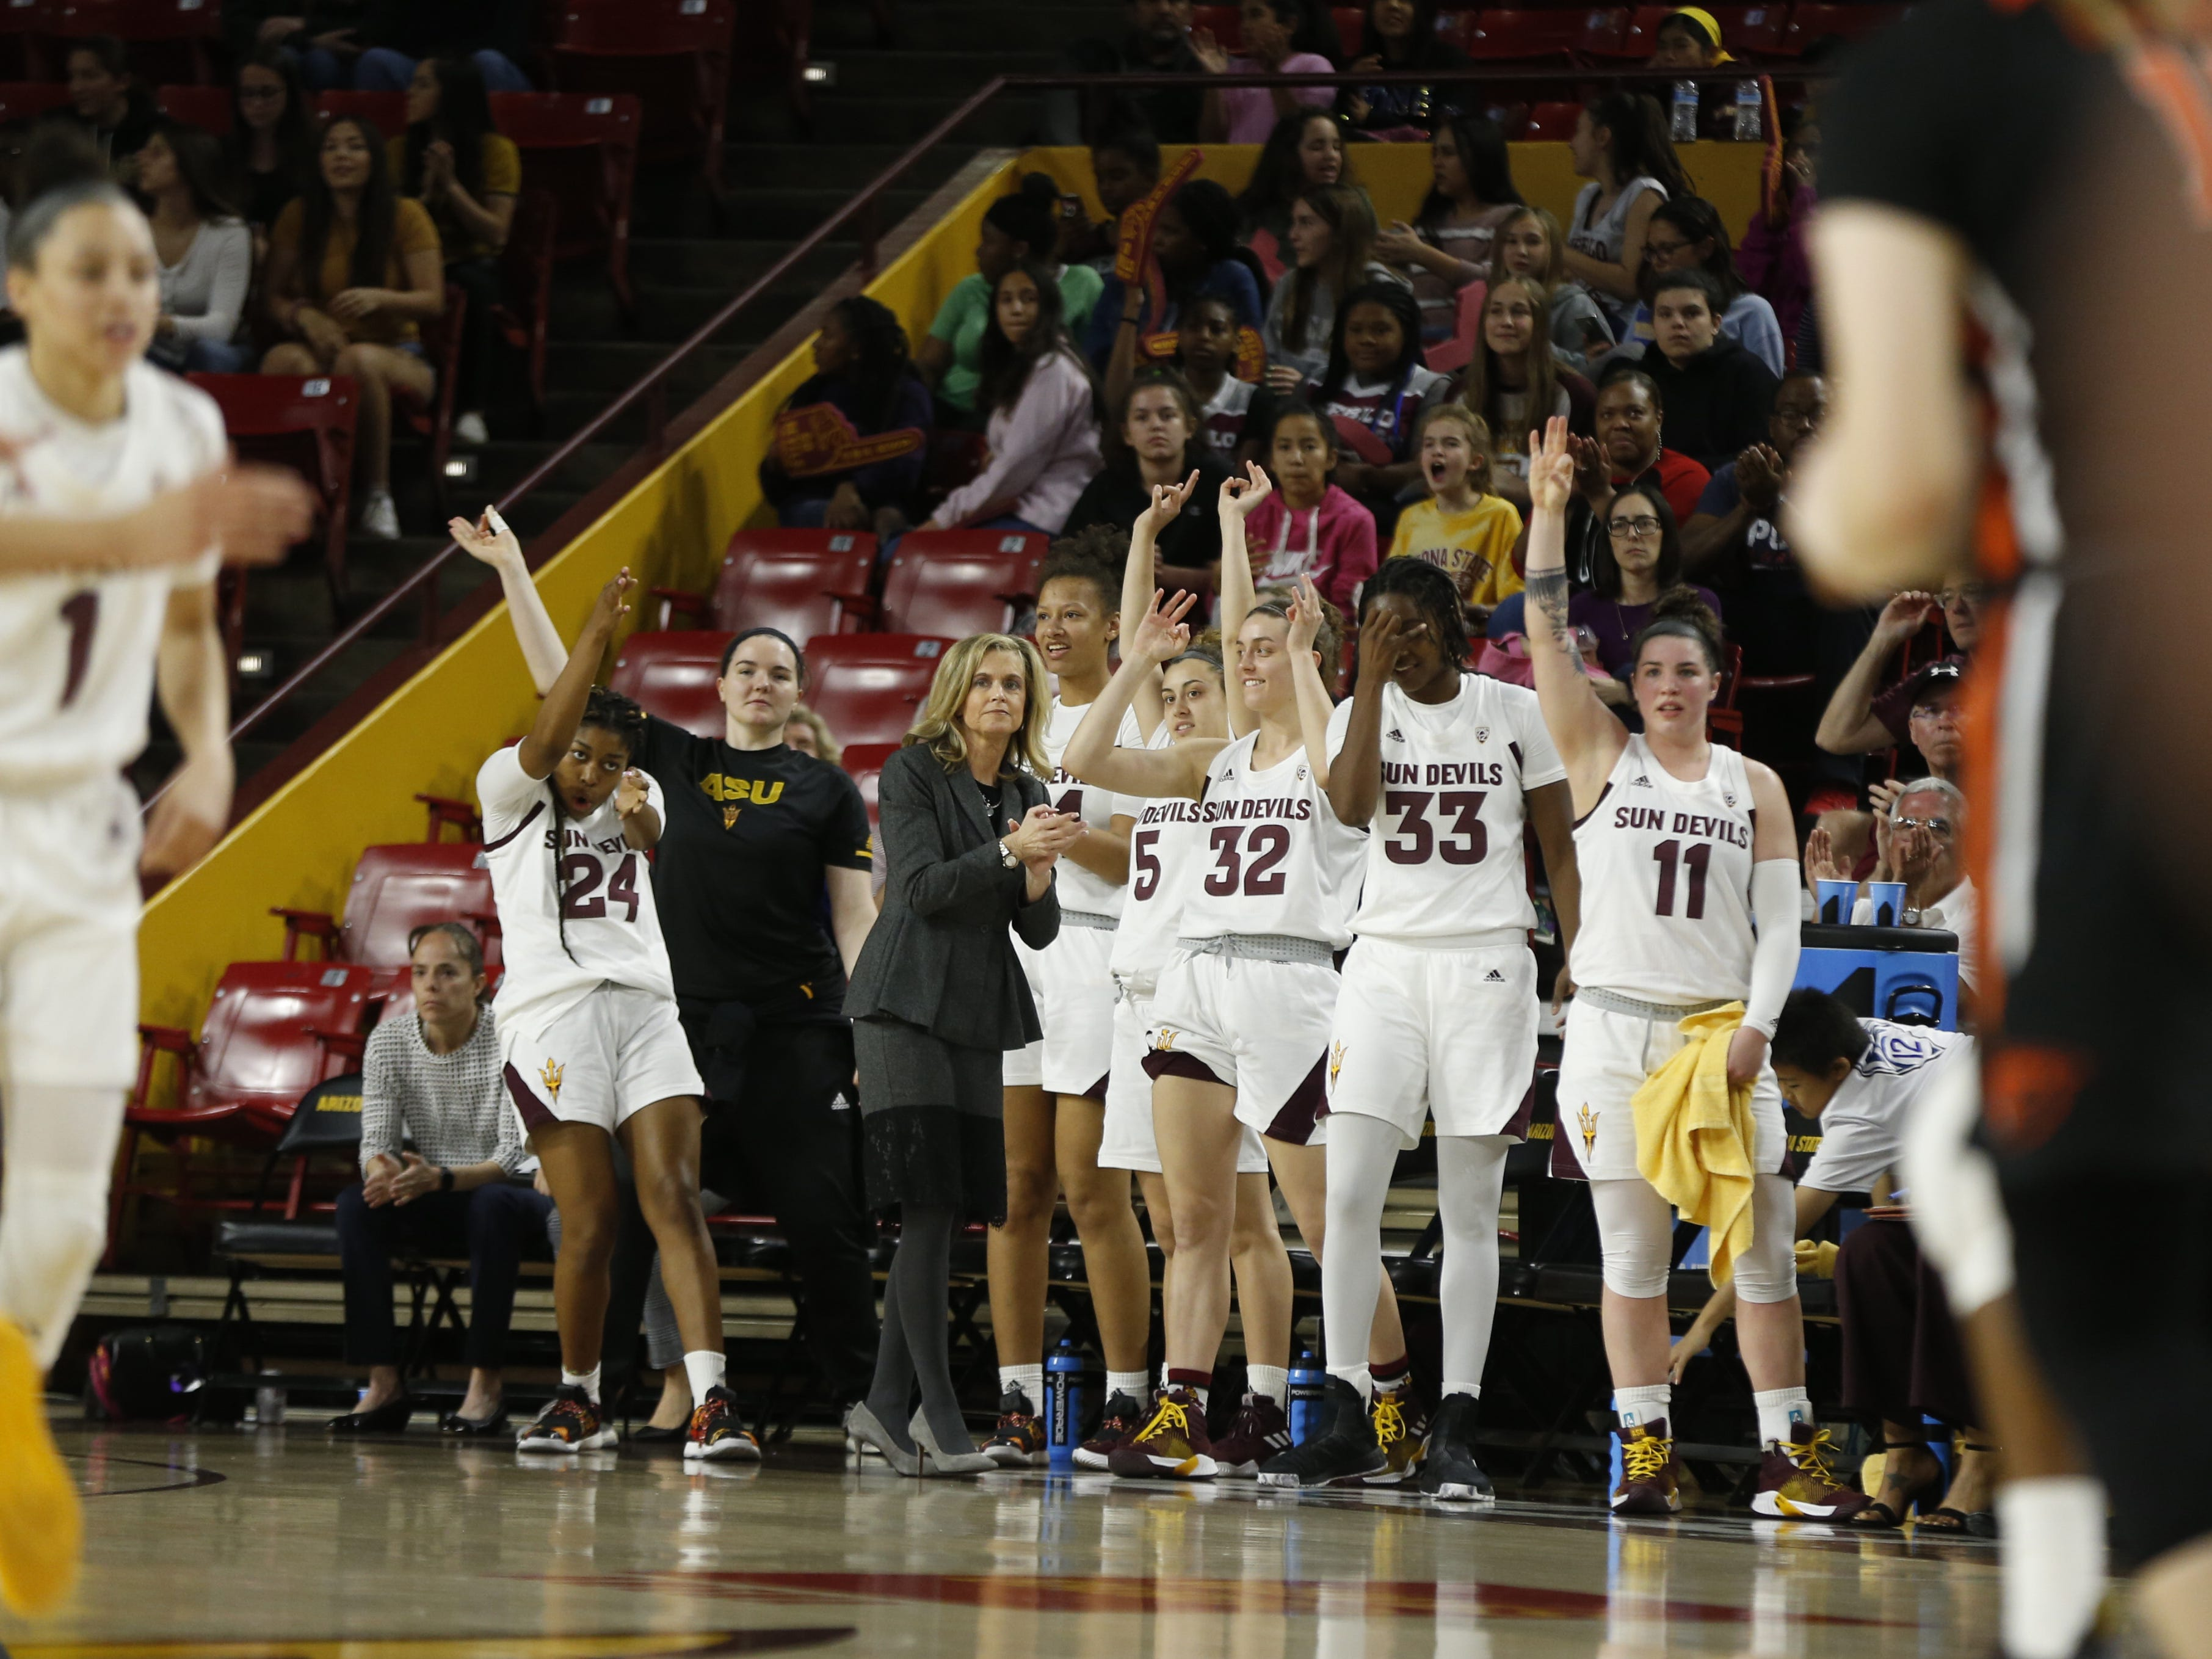 ASU's bench reacts after a basket against Oregon State during the first half at Wells Fargo Arena in Tempe, Ariz. on March 1, 2019.